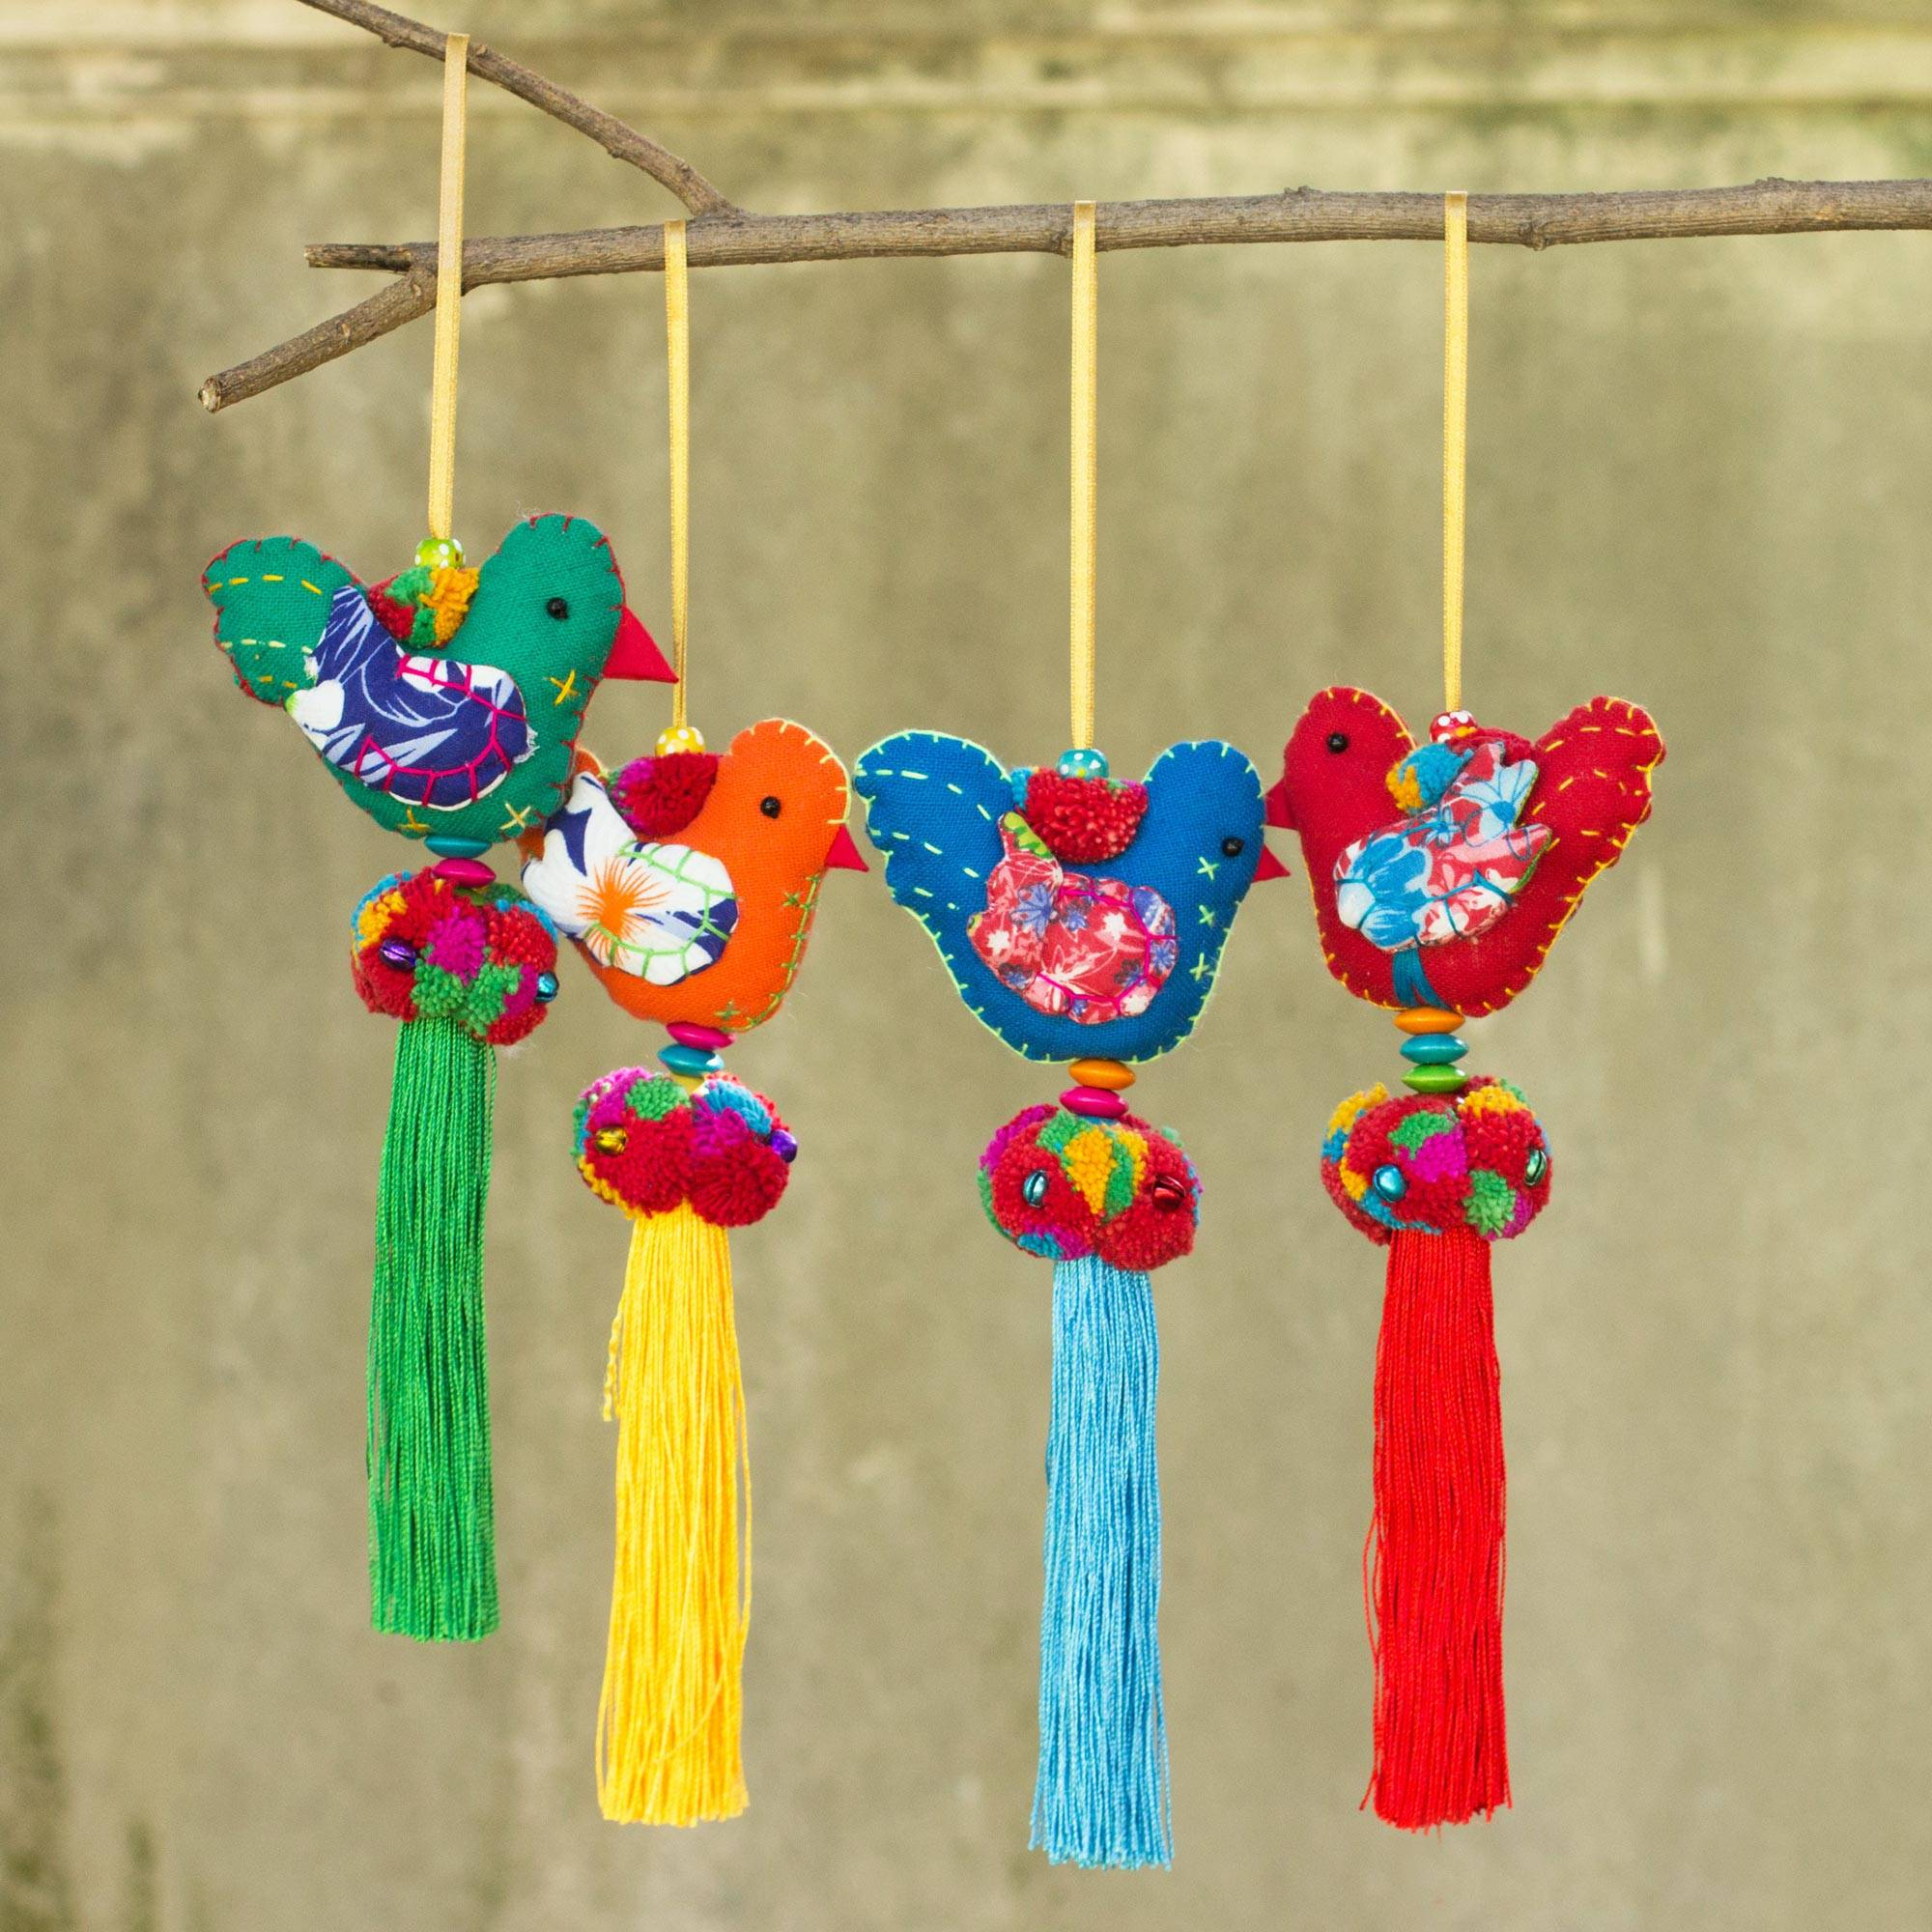 Happy Thai Doves 4 Birds and Brass Bells Artisan Crafted Multicolor Ornaments